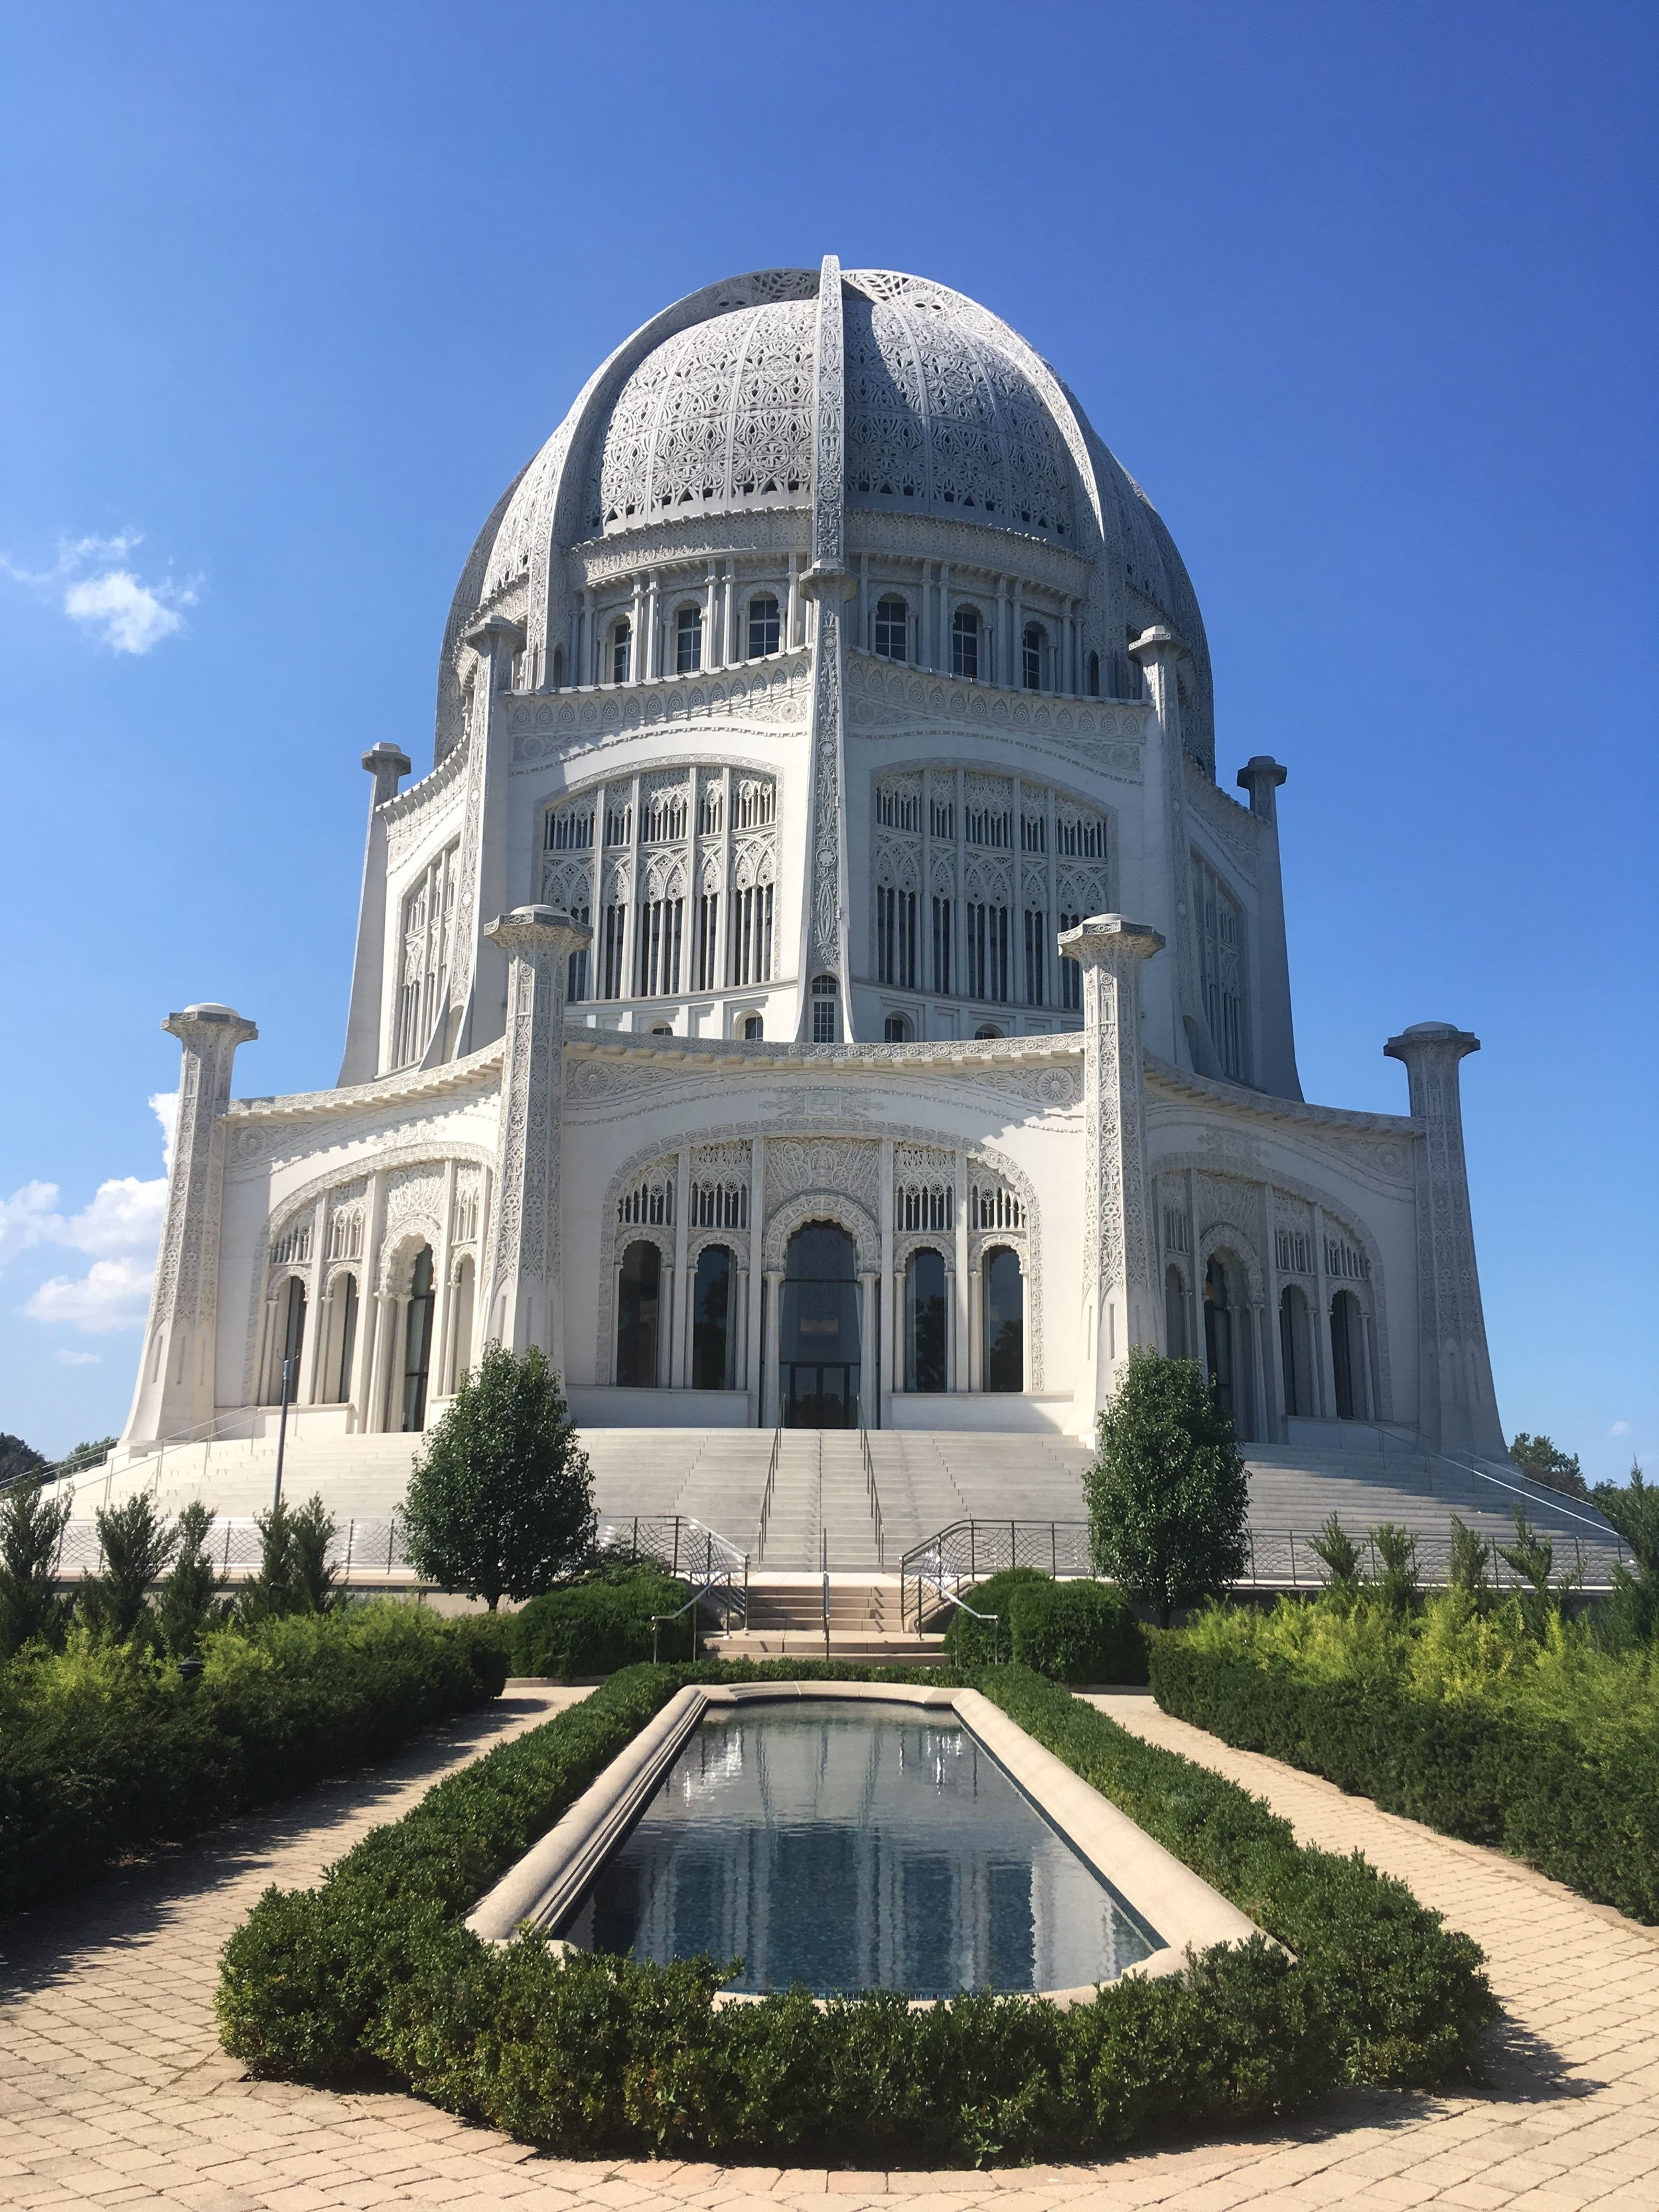 The majesty of the Baha'i Temple